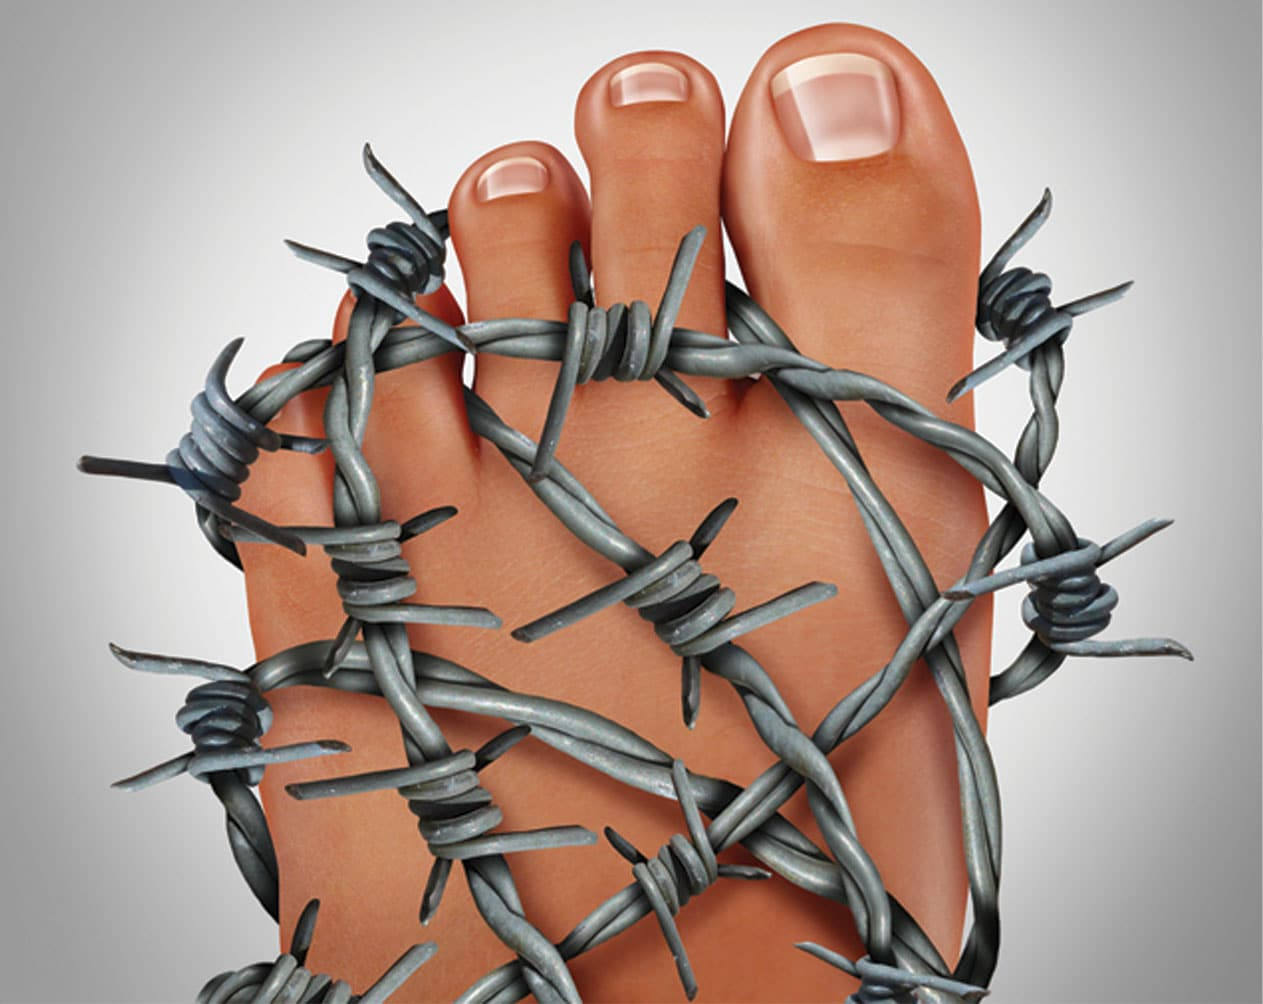 Learn How You Can Find Relief From the Debilitating Pain of Peripheral Neuropathy without Addictive Drugs